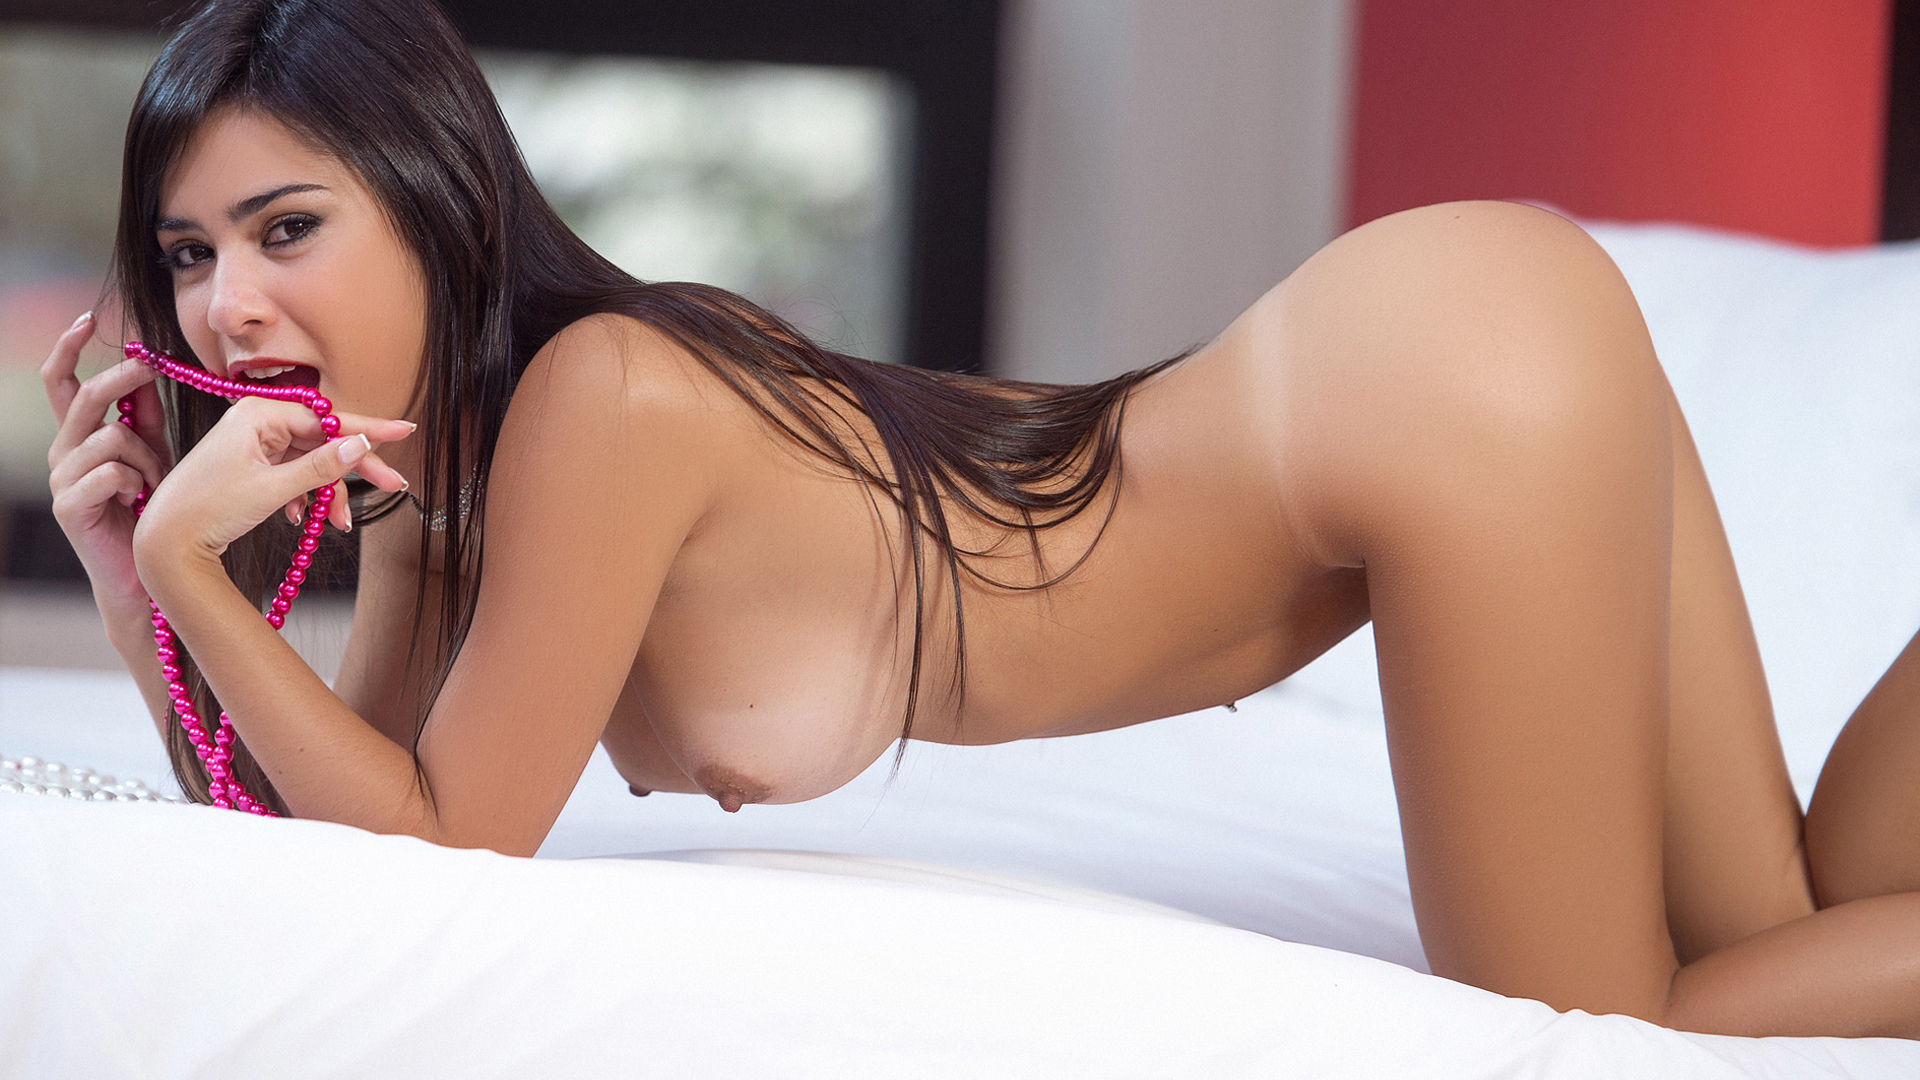 pictures-of-hot-latina-girls-naked